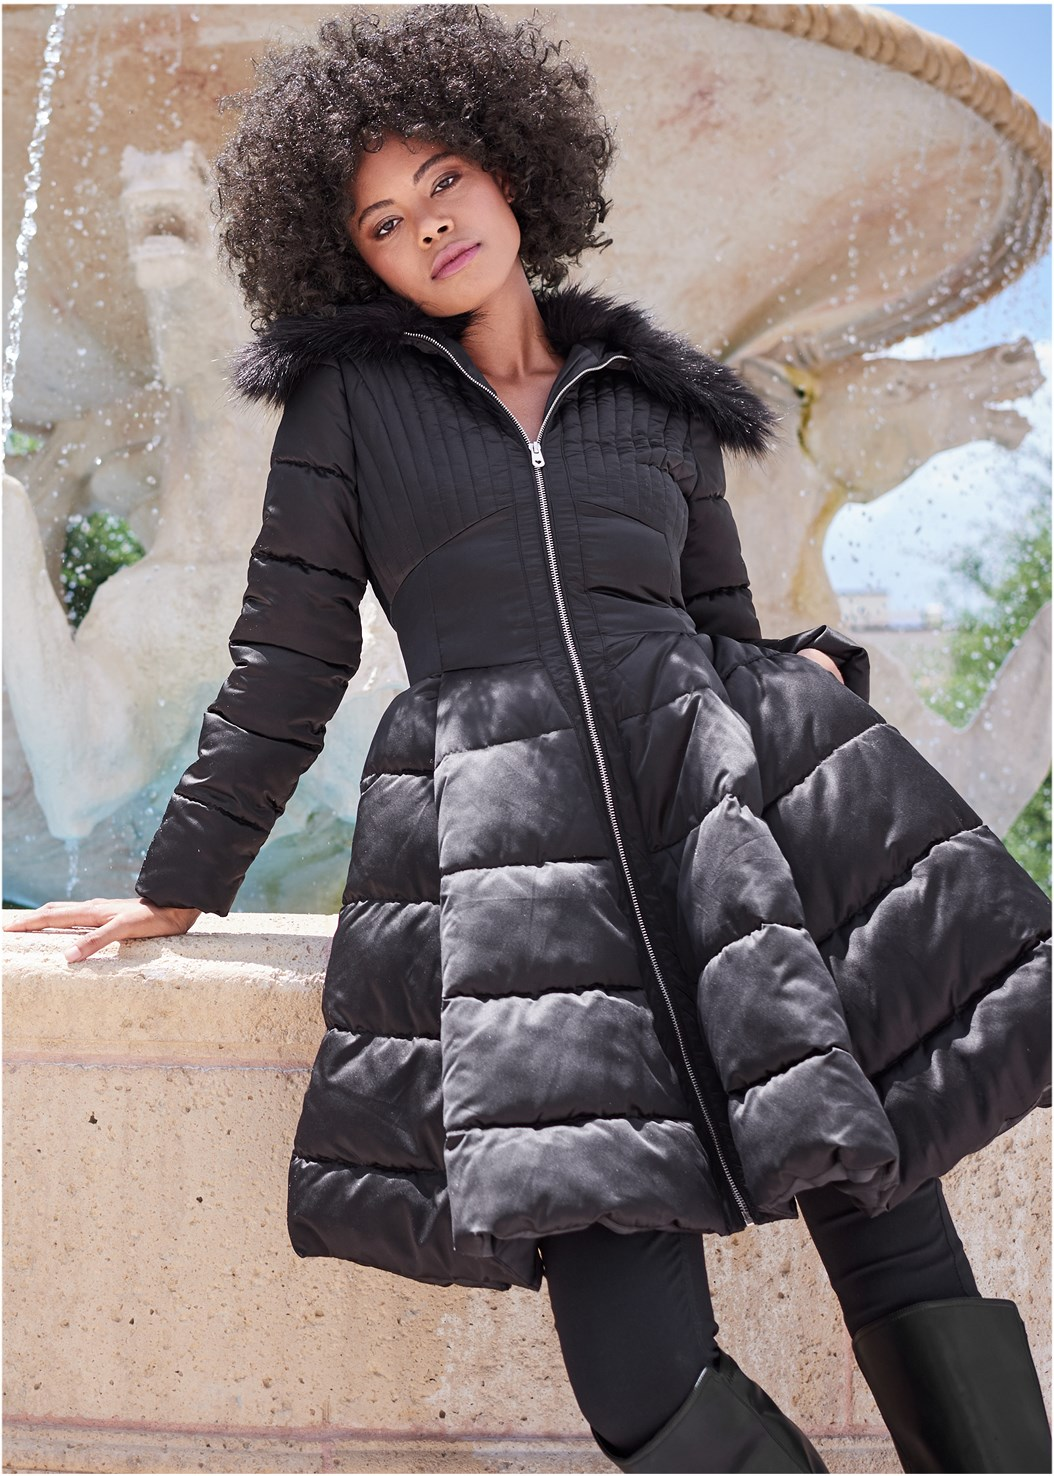 Peplum Puffer Jacket,Mid Rise Slimming Stretch Jeggings,Off The Shoulder Top,Mid Rise Color Skinny Jeans,Full Figure Strapless Bra,Knee High Block Heel Boot,Tie Back Boots,Slouchy Layered Strap Boots